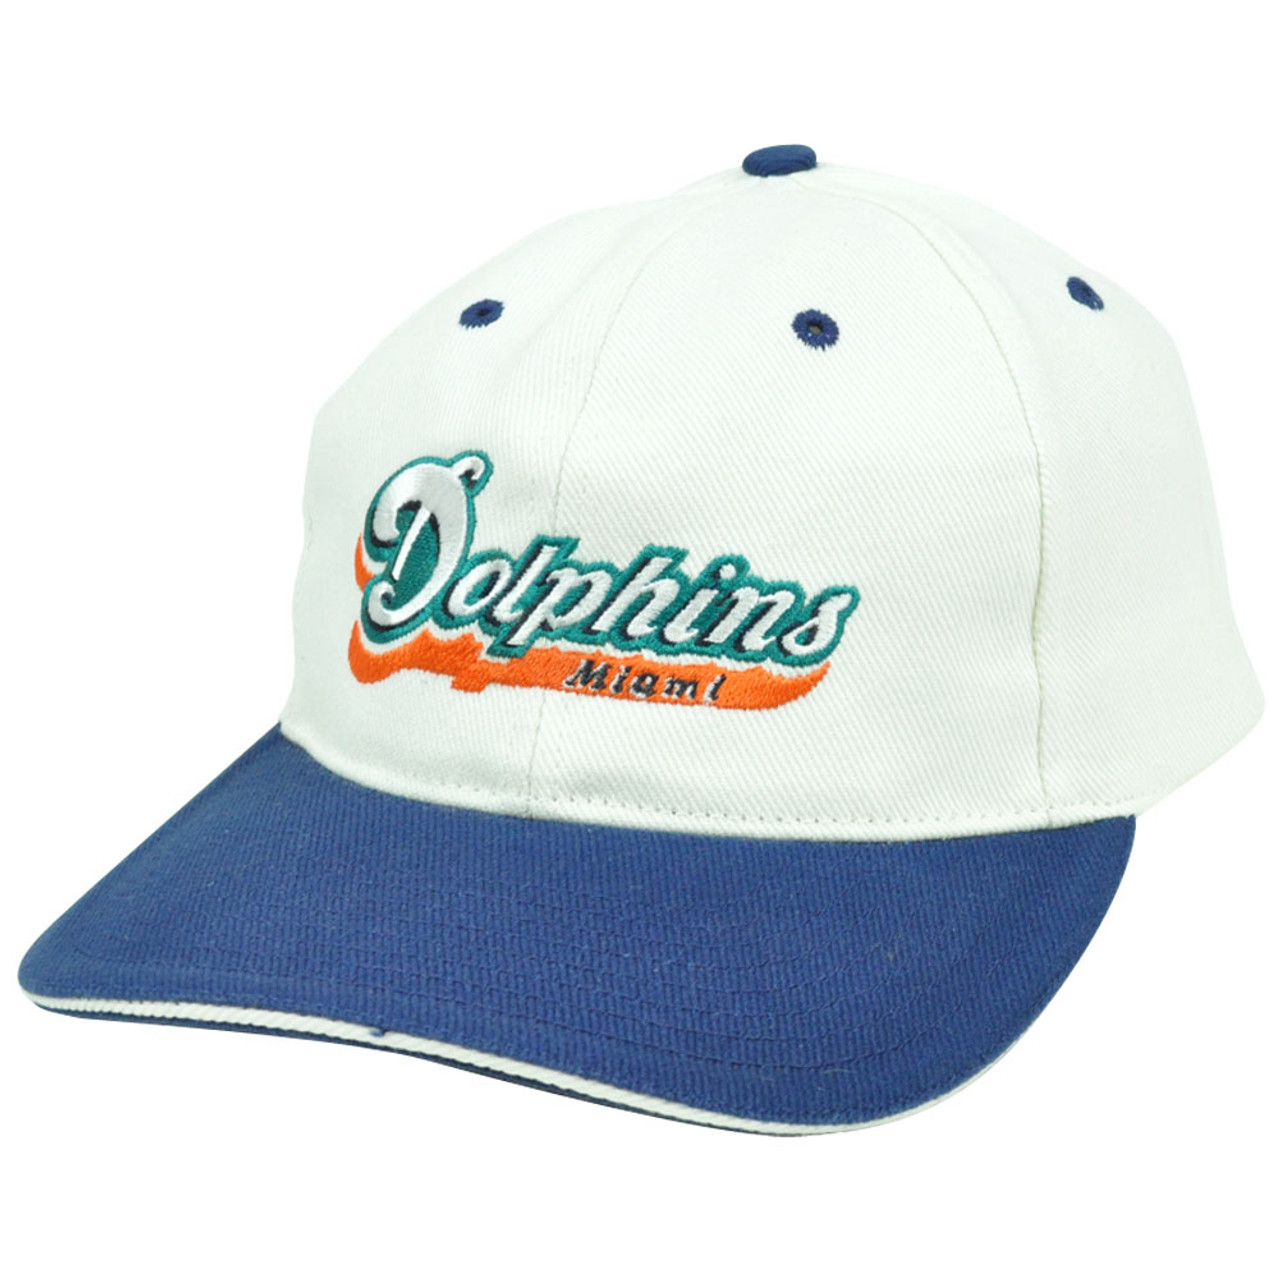 ee5e61ce NFL Miami Dolphins Vintage Old School Flat Snapback Sports Specialties Hat  Cap - Sinbad Sports Store